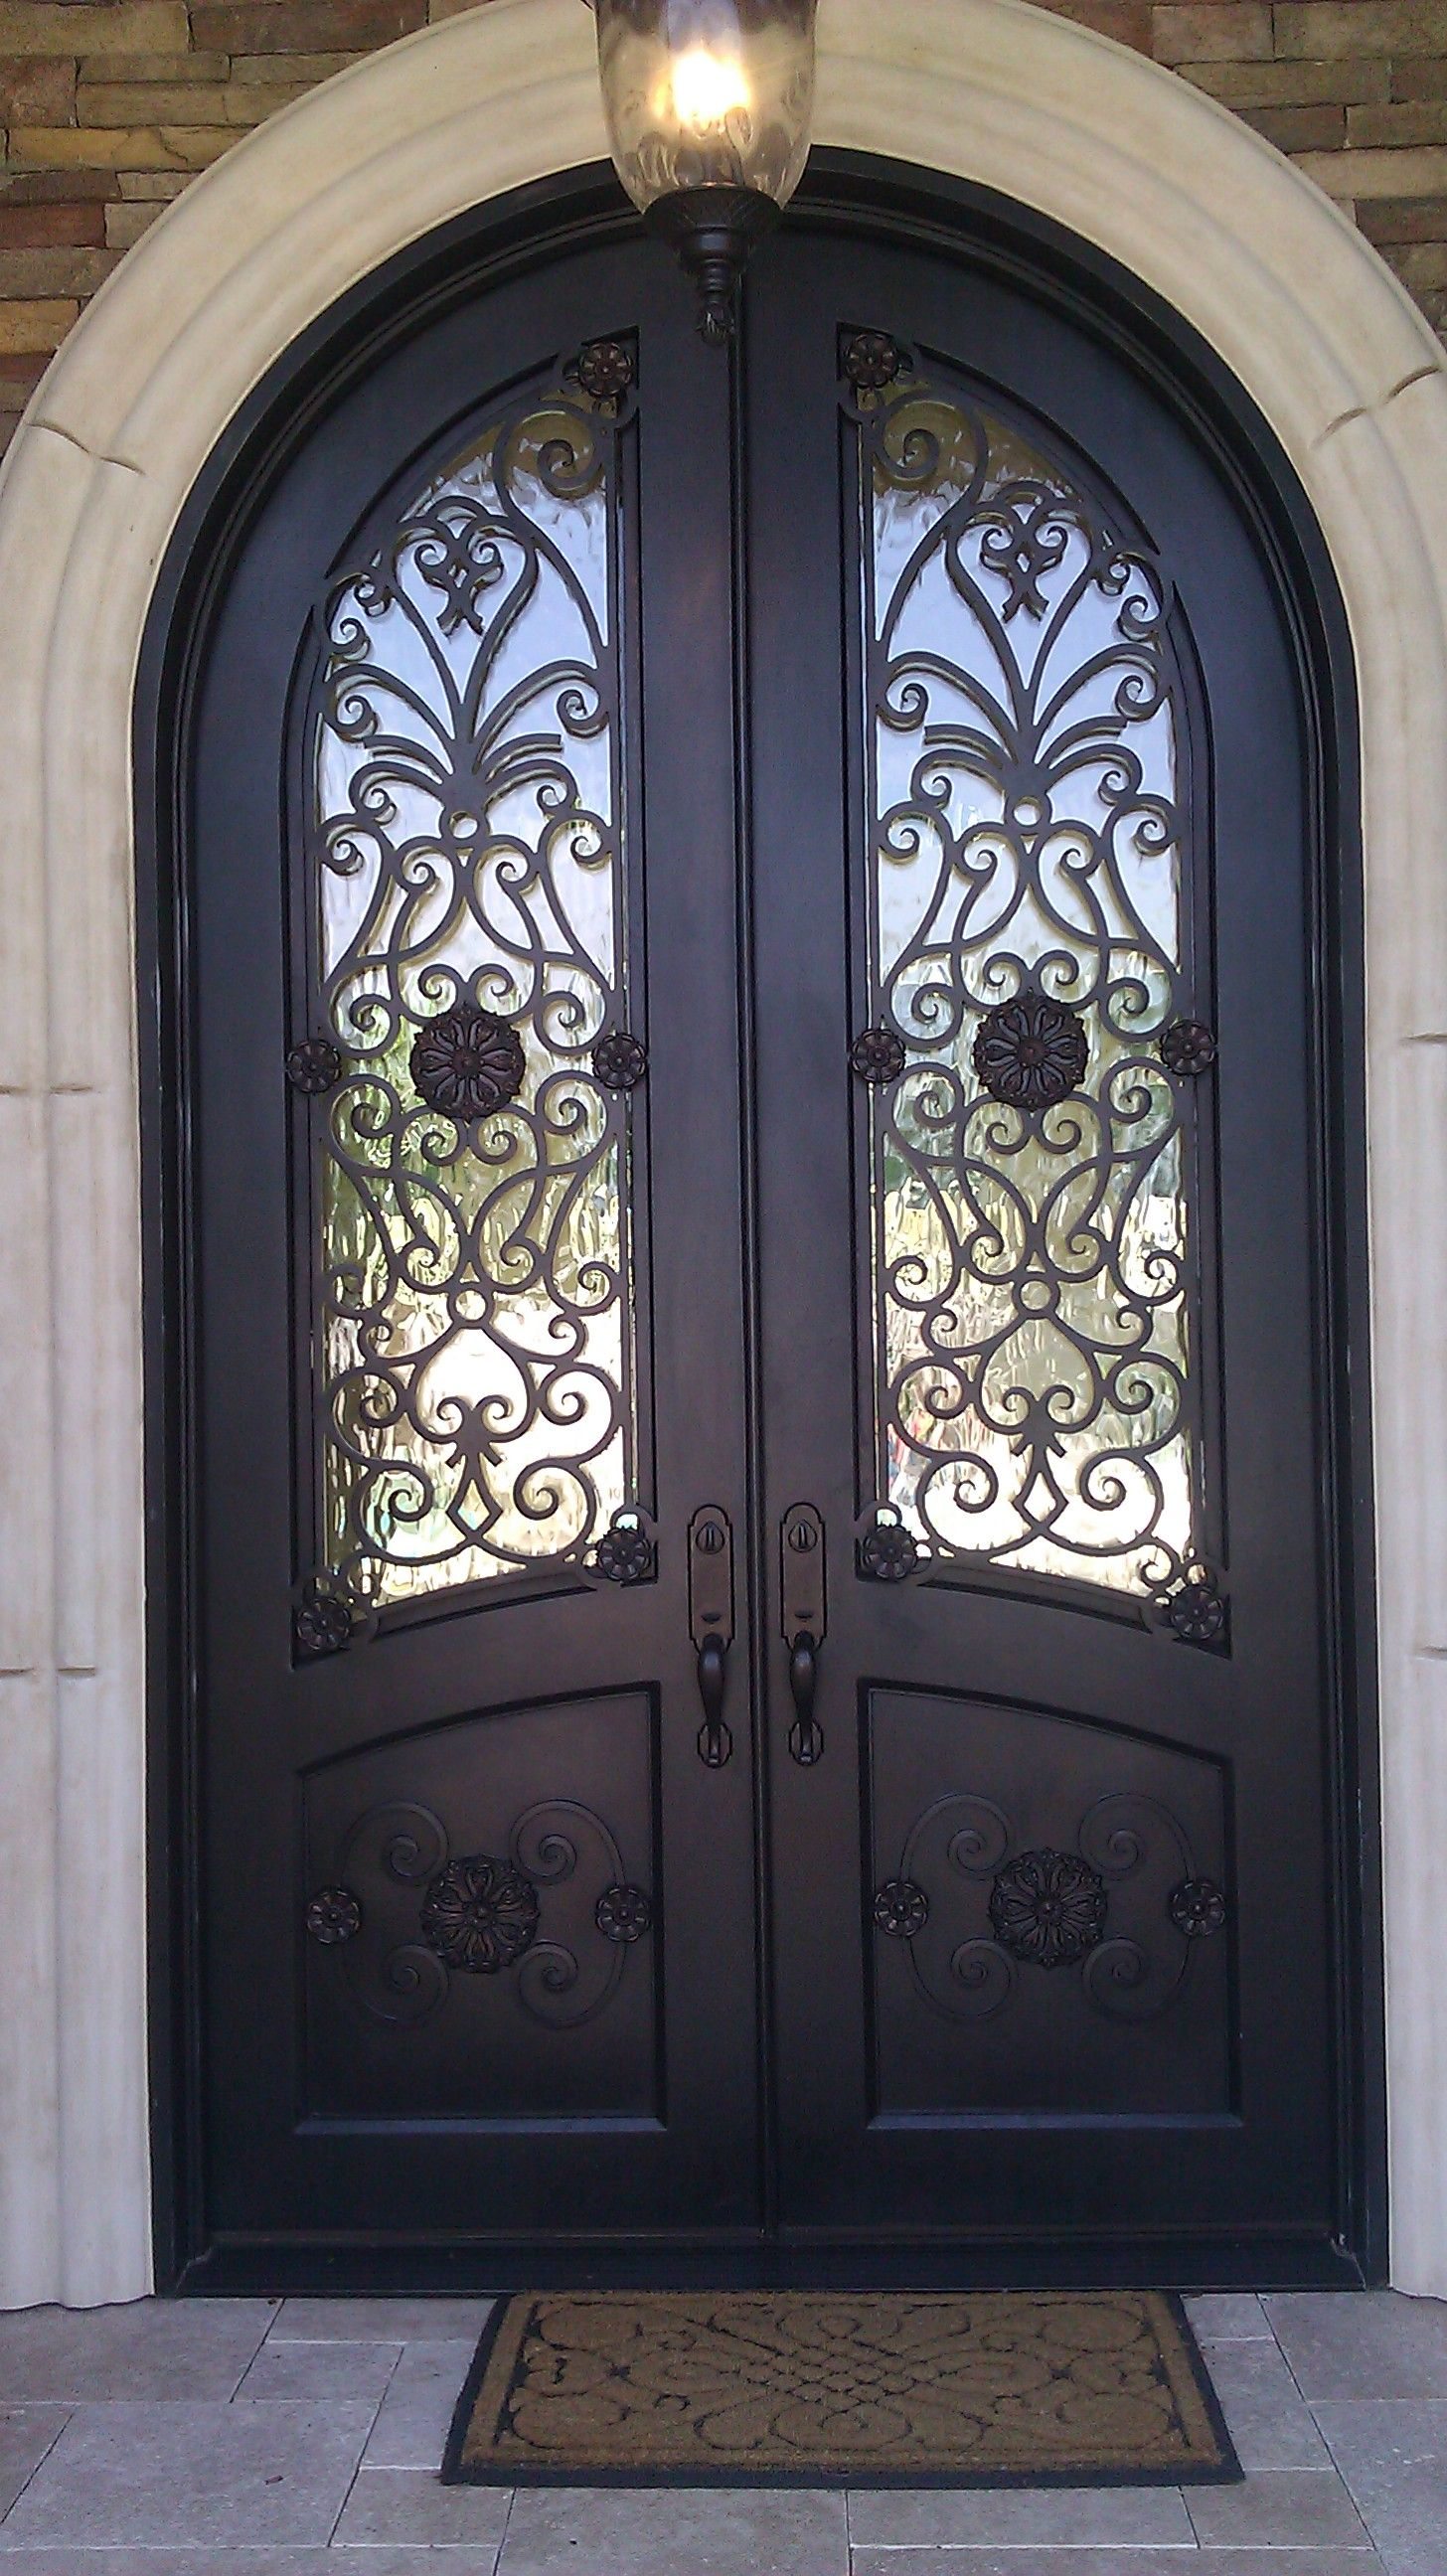 Superieur We Worked Hand In Hand With Our Customers To Design This Custom, Arch Top,  Wrought Iron Door. We Think It Turned Out Pretty Fantastic! Dream Home.  Front ...